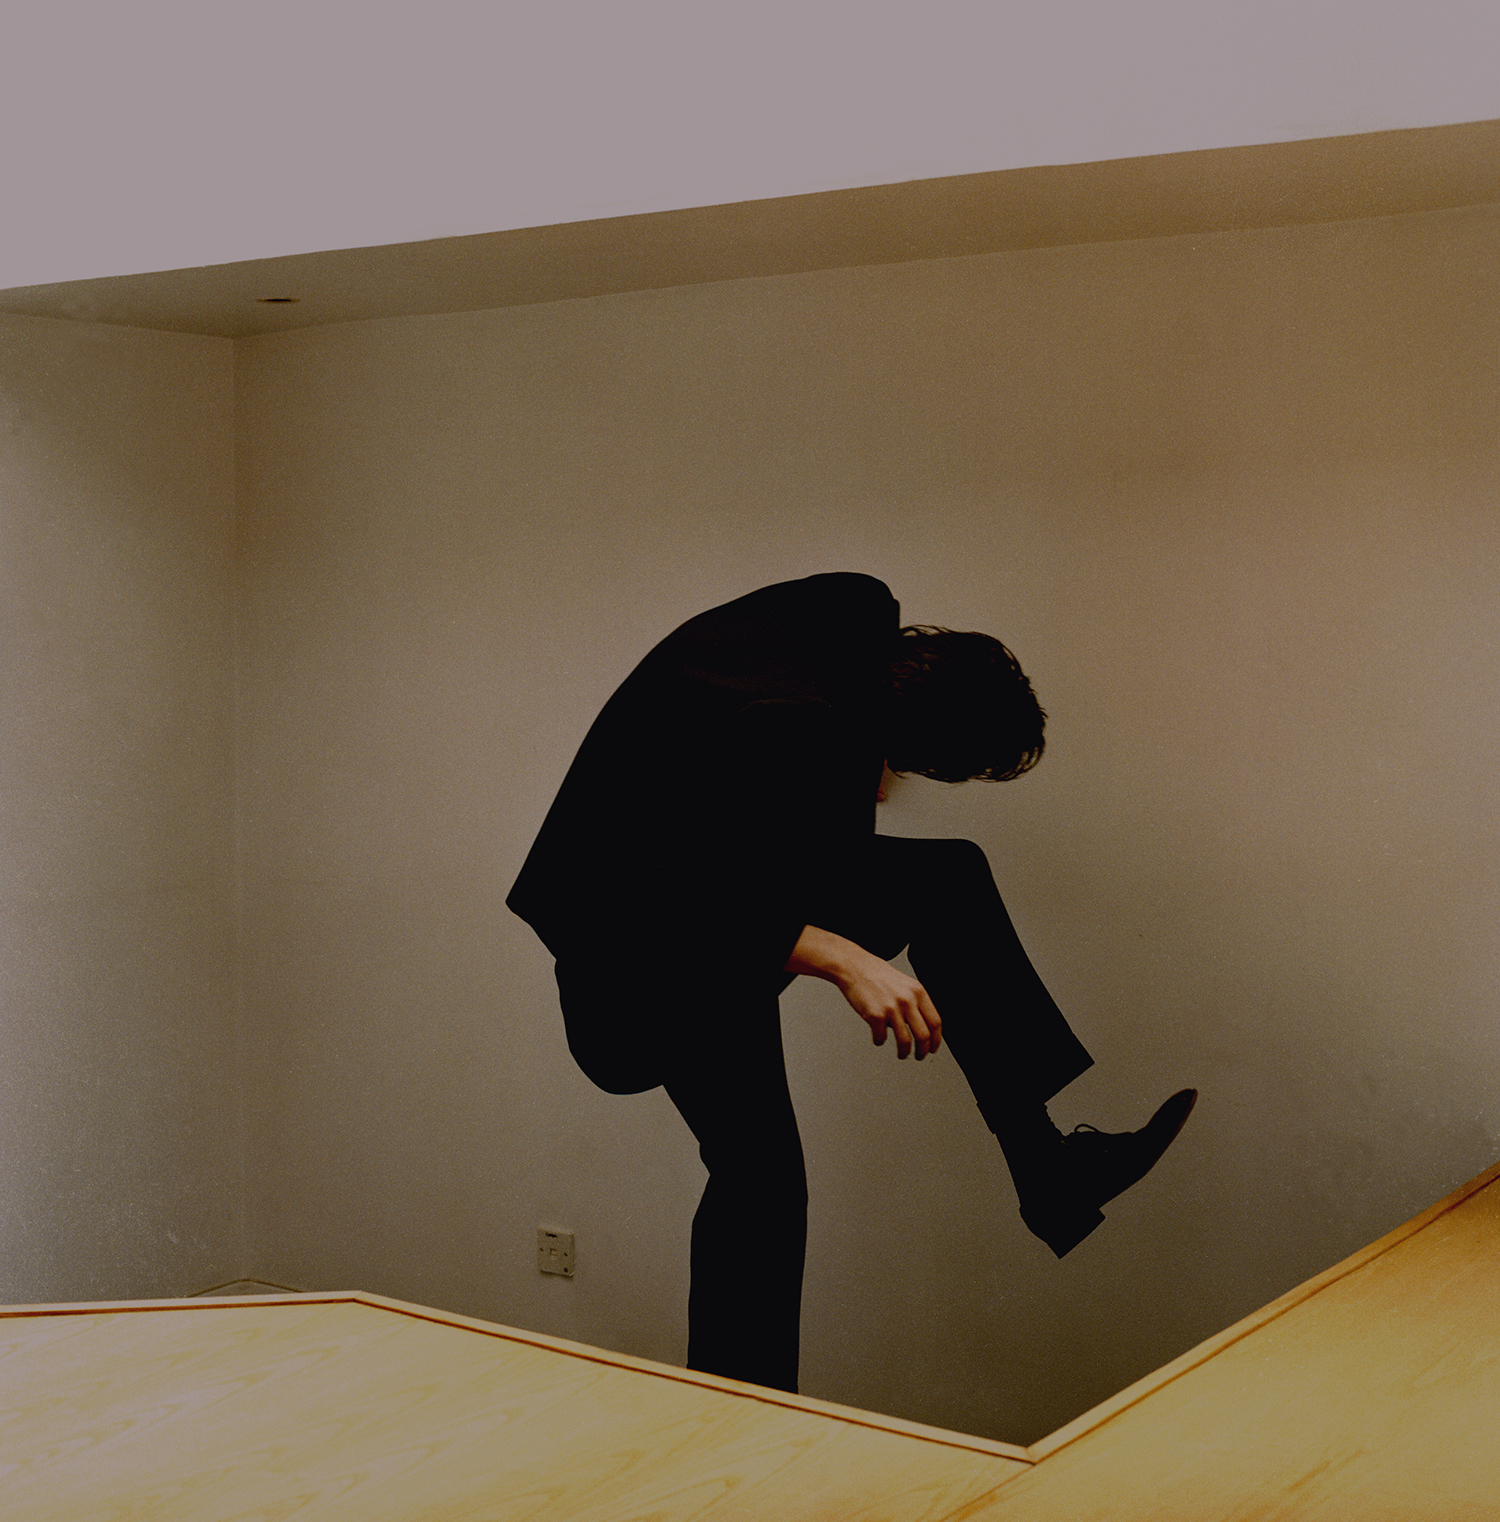 A man wearing all black hunches over mid-step, his head turned to the left, between a desk and wall.